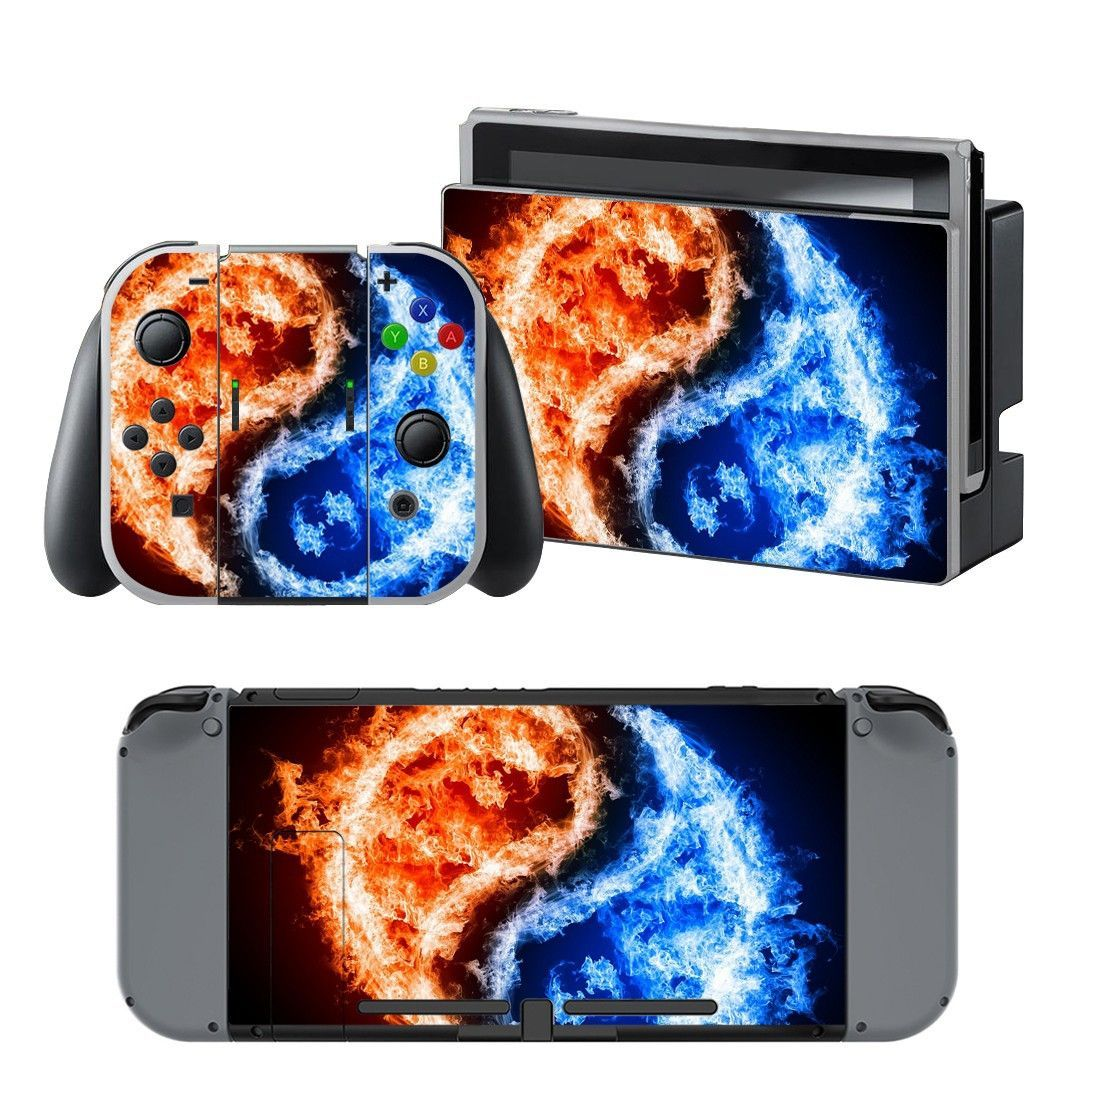 Cool Fire Design Vinyl Decal For Nintendo Switch Console Sticker Skin Nintendo Switch Xbox One Skin Console